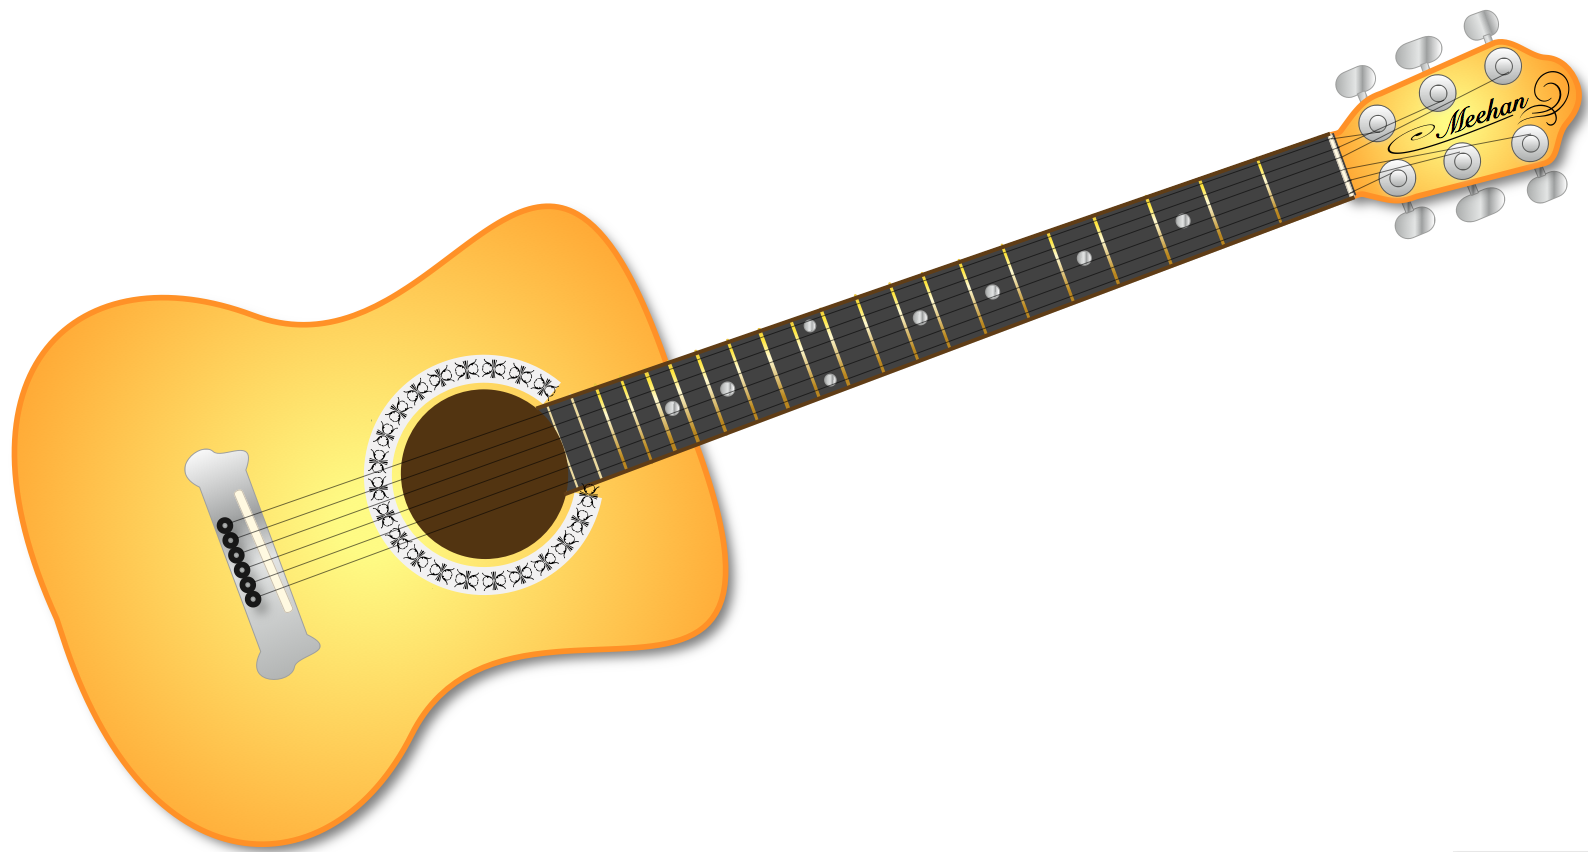 Clipart guitar royalty free. Clip art images